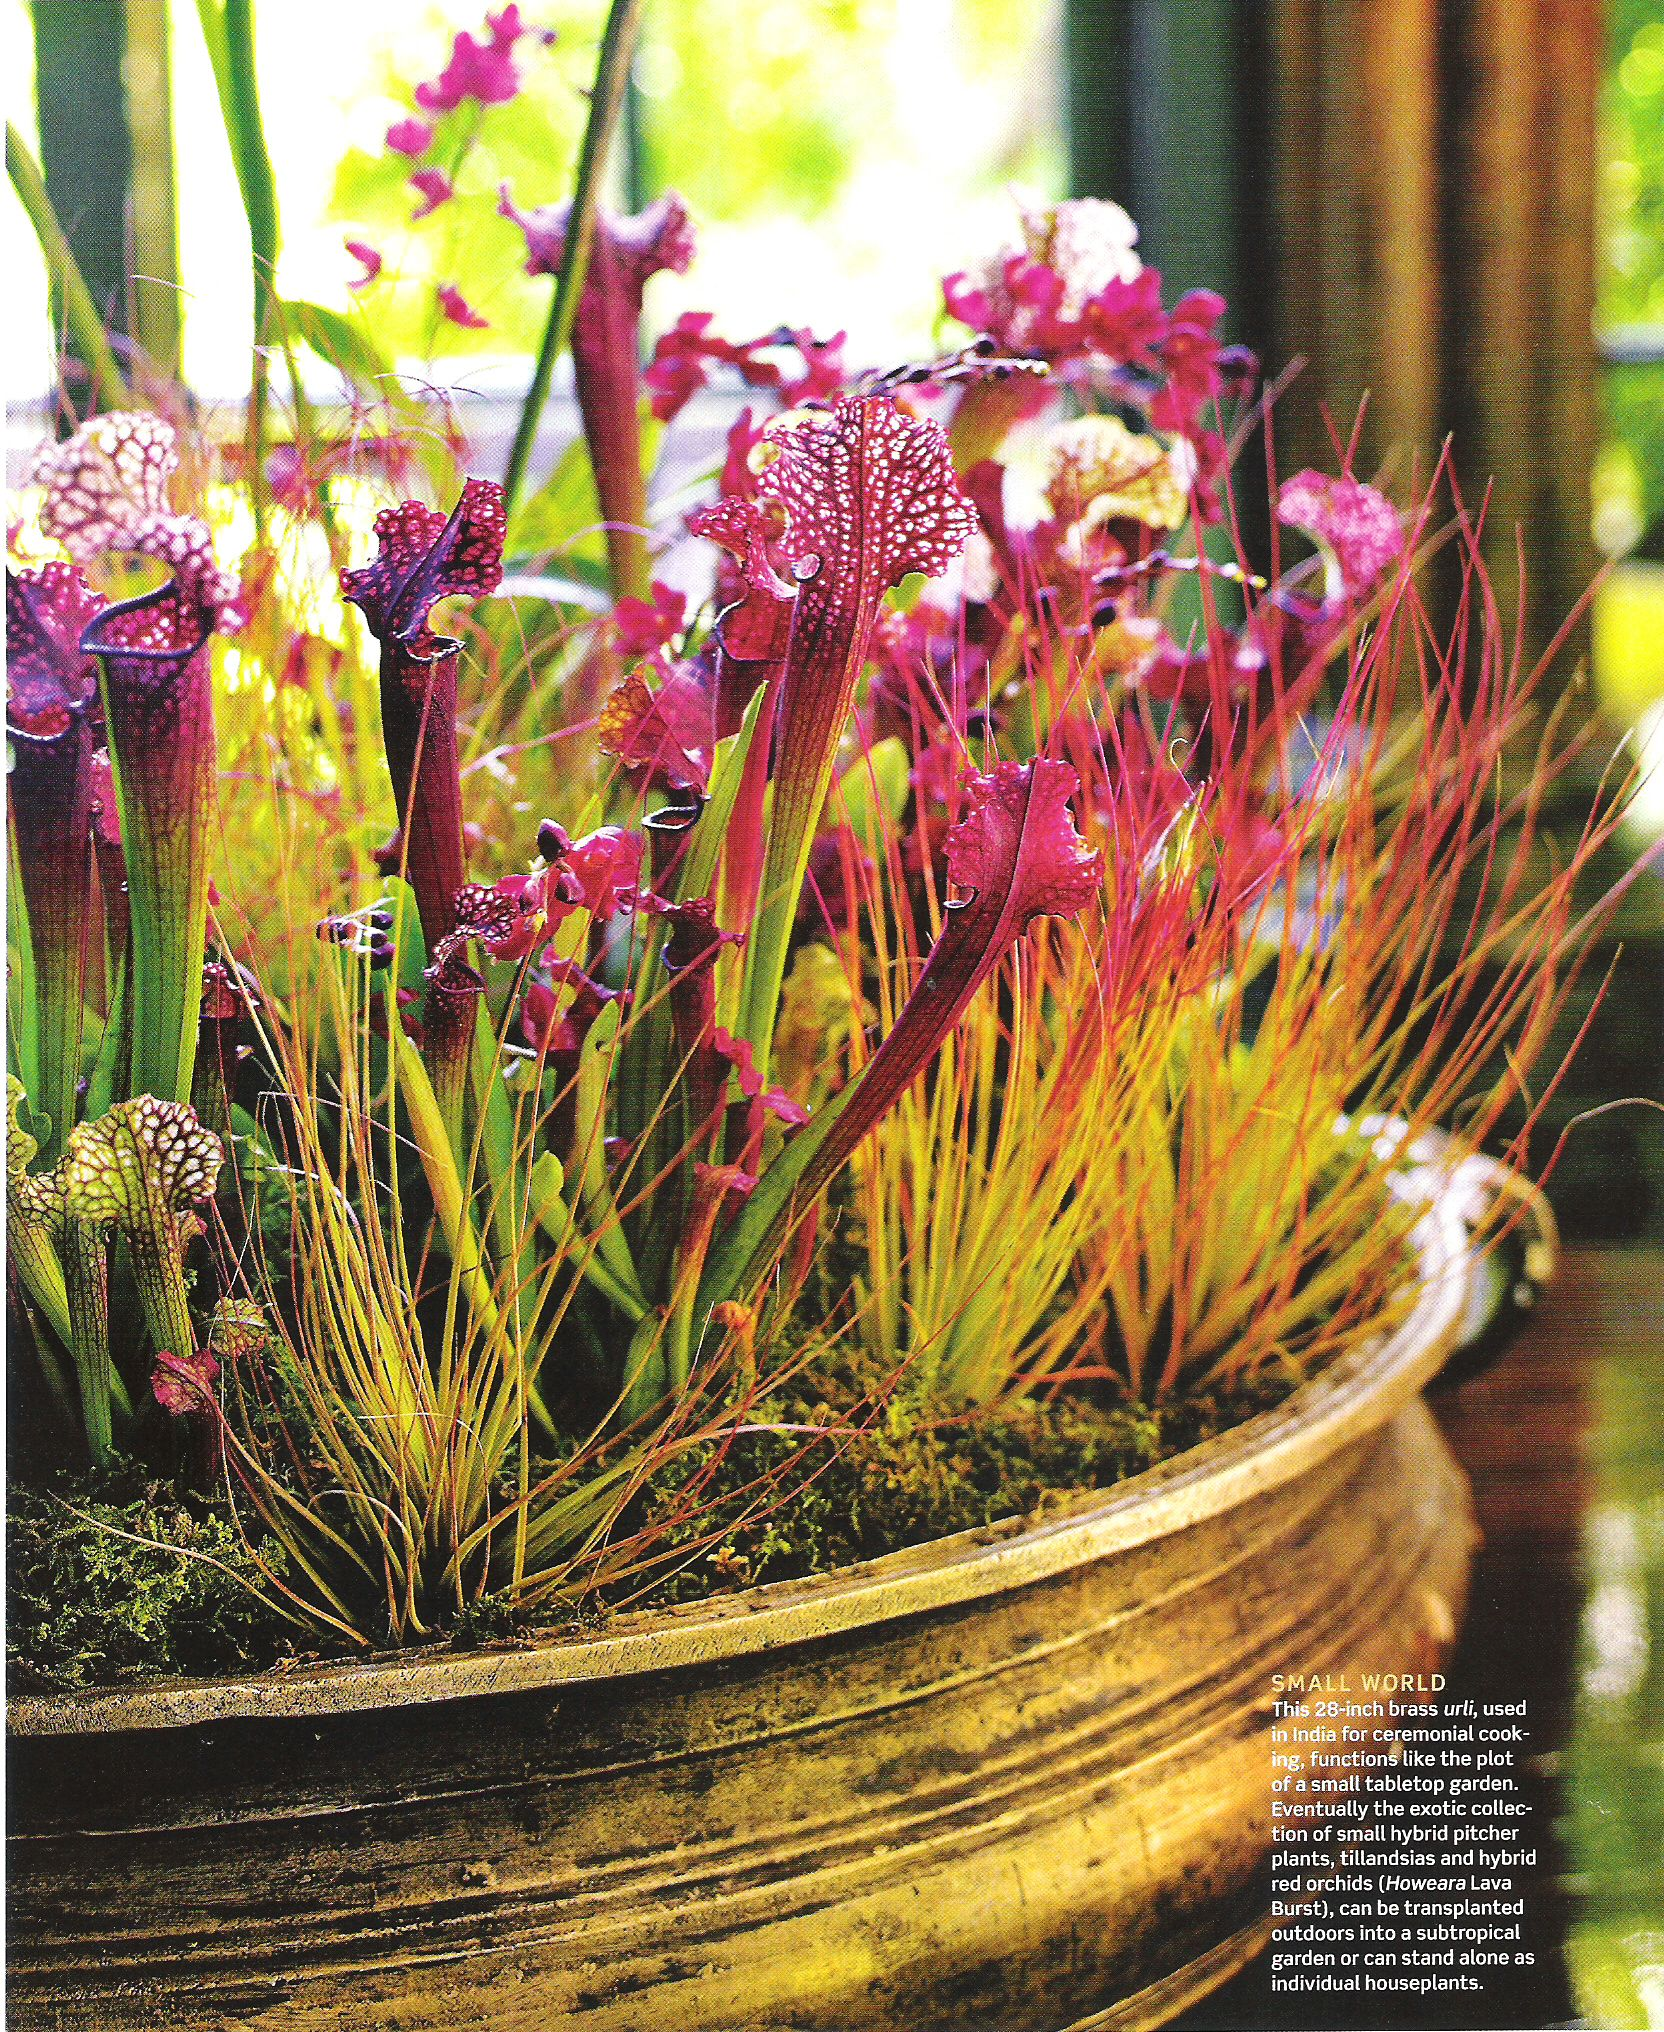 Tabletop Garden Of Orchids Tillandsia And Hybrid Pitcher Plants